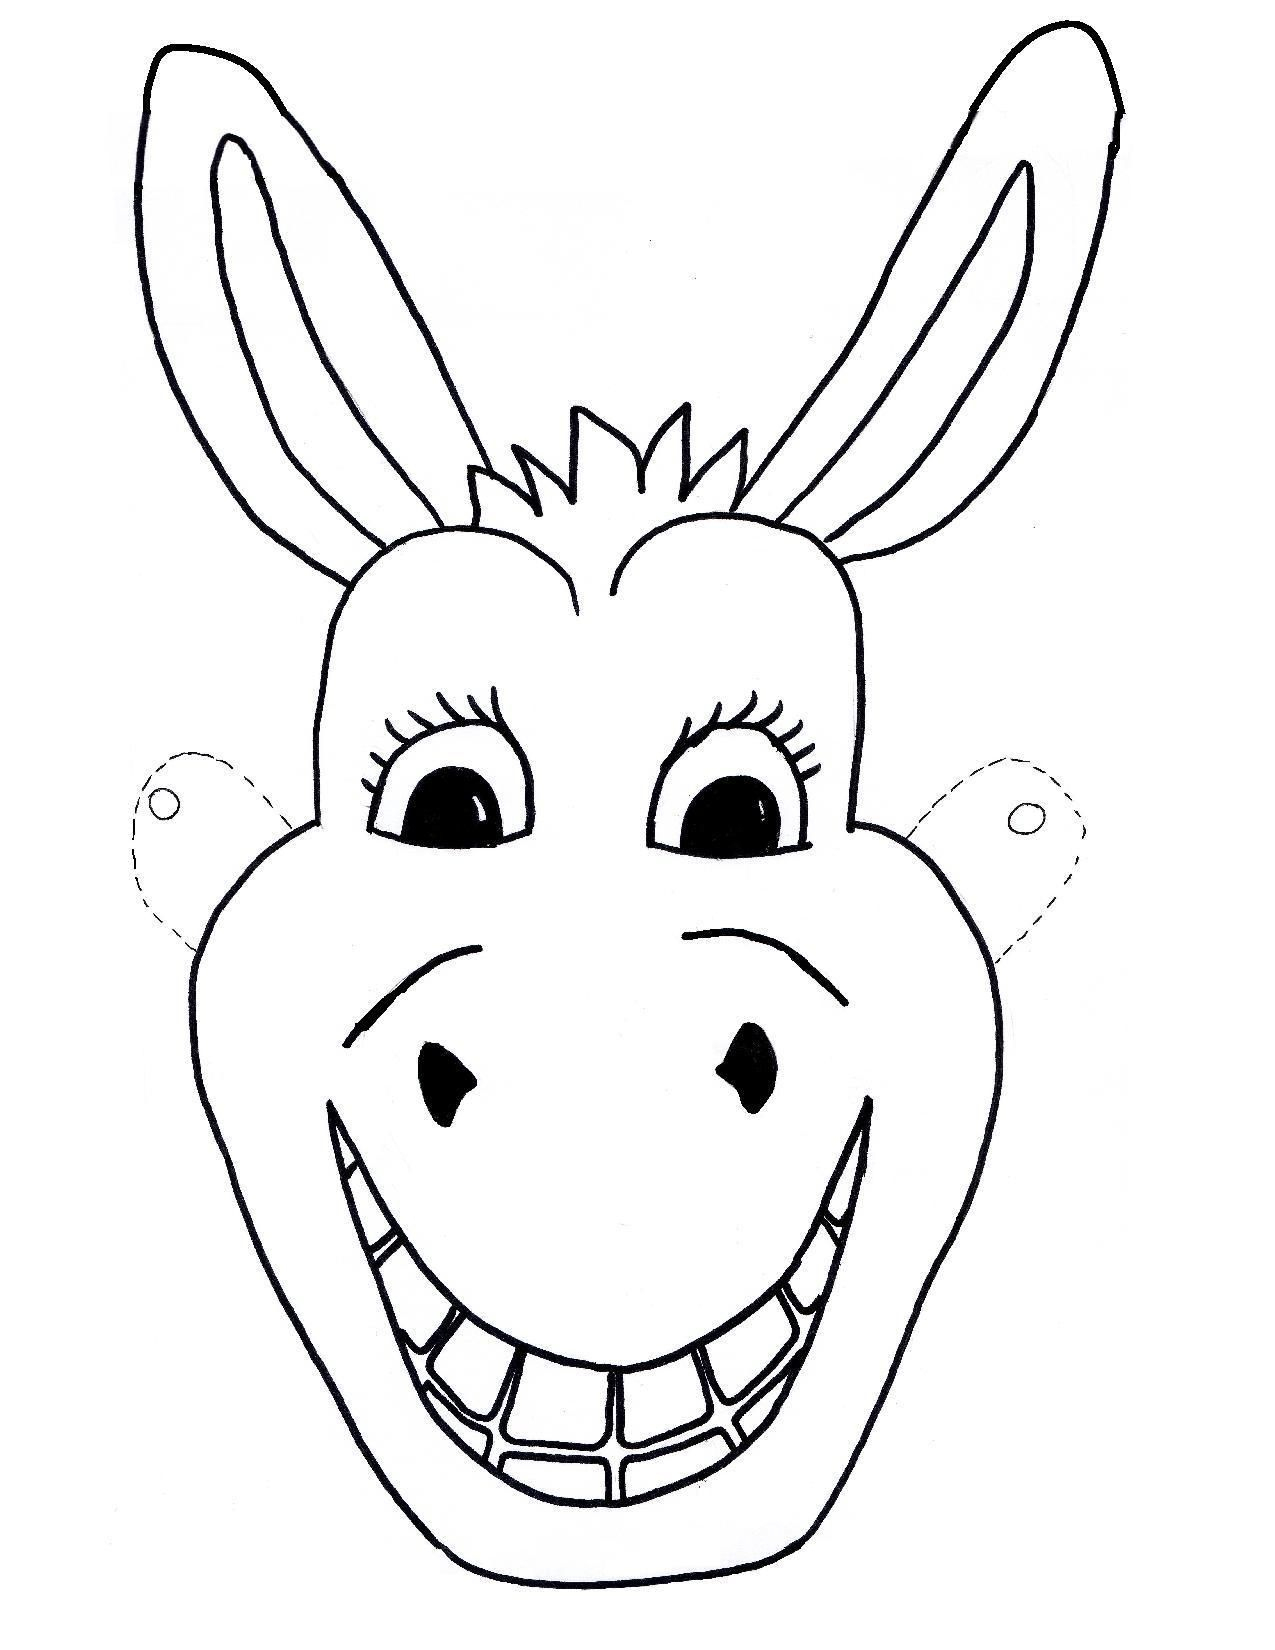 Template-Free-Kids-Mask-Donkey-Craft-Children- | Sunday School Ideas - Animal Face Masks Printable Free